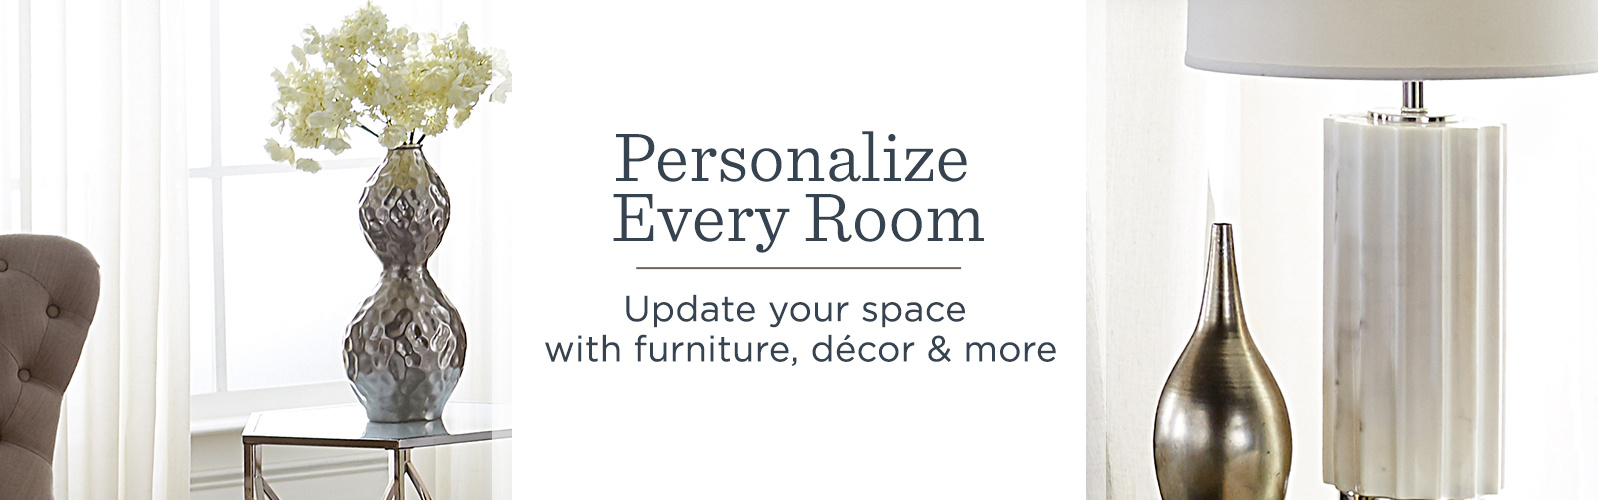 Personalize Every Room. Update your space with furniture, décor & more.